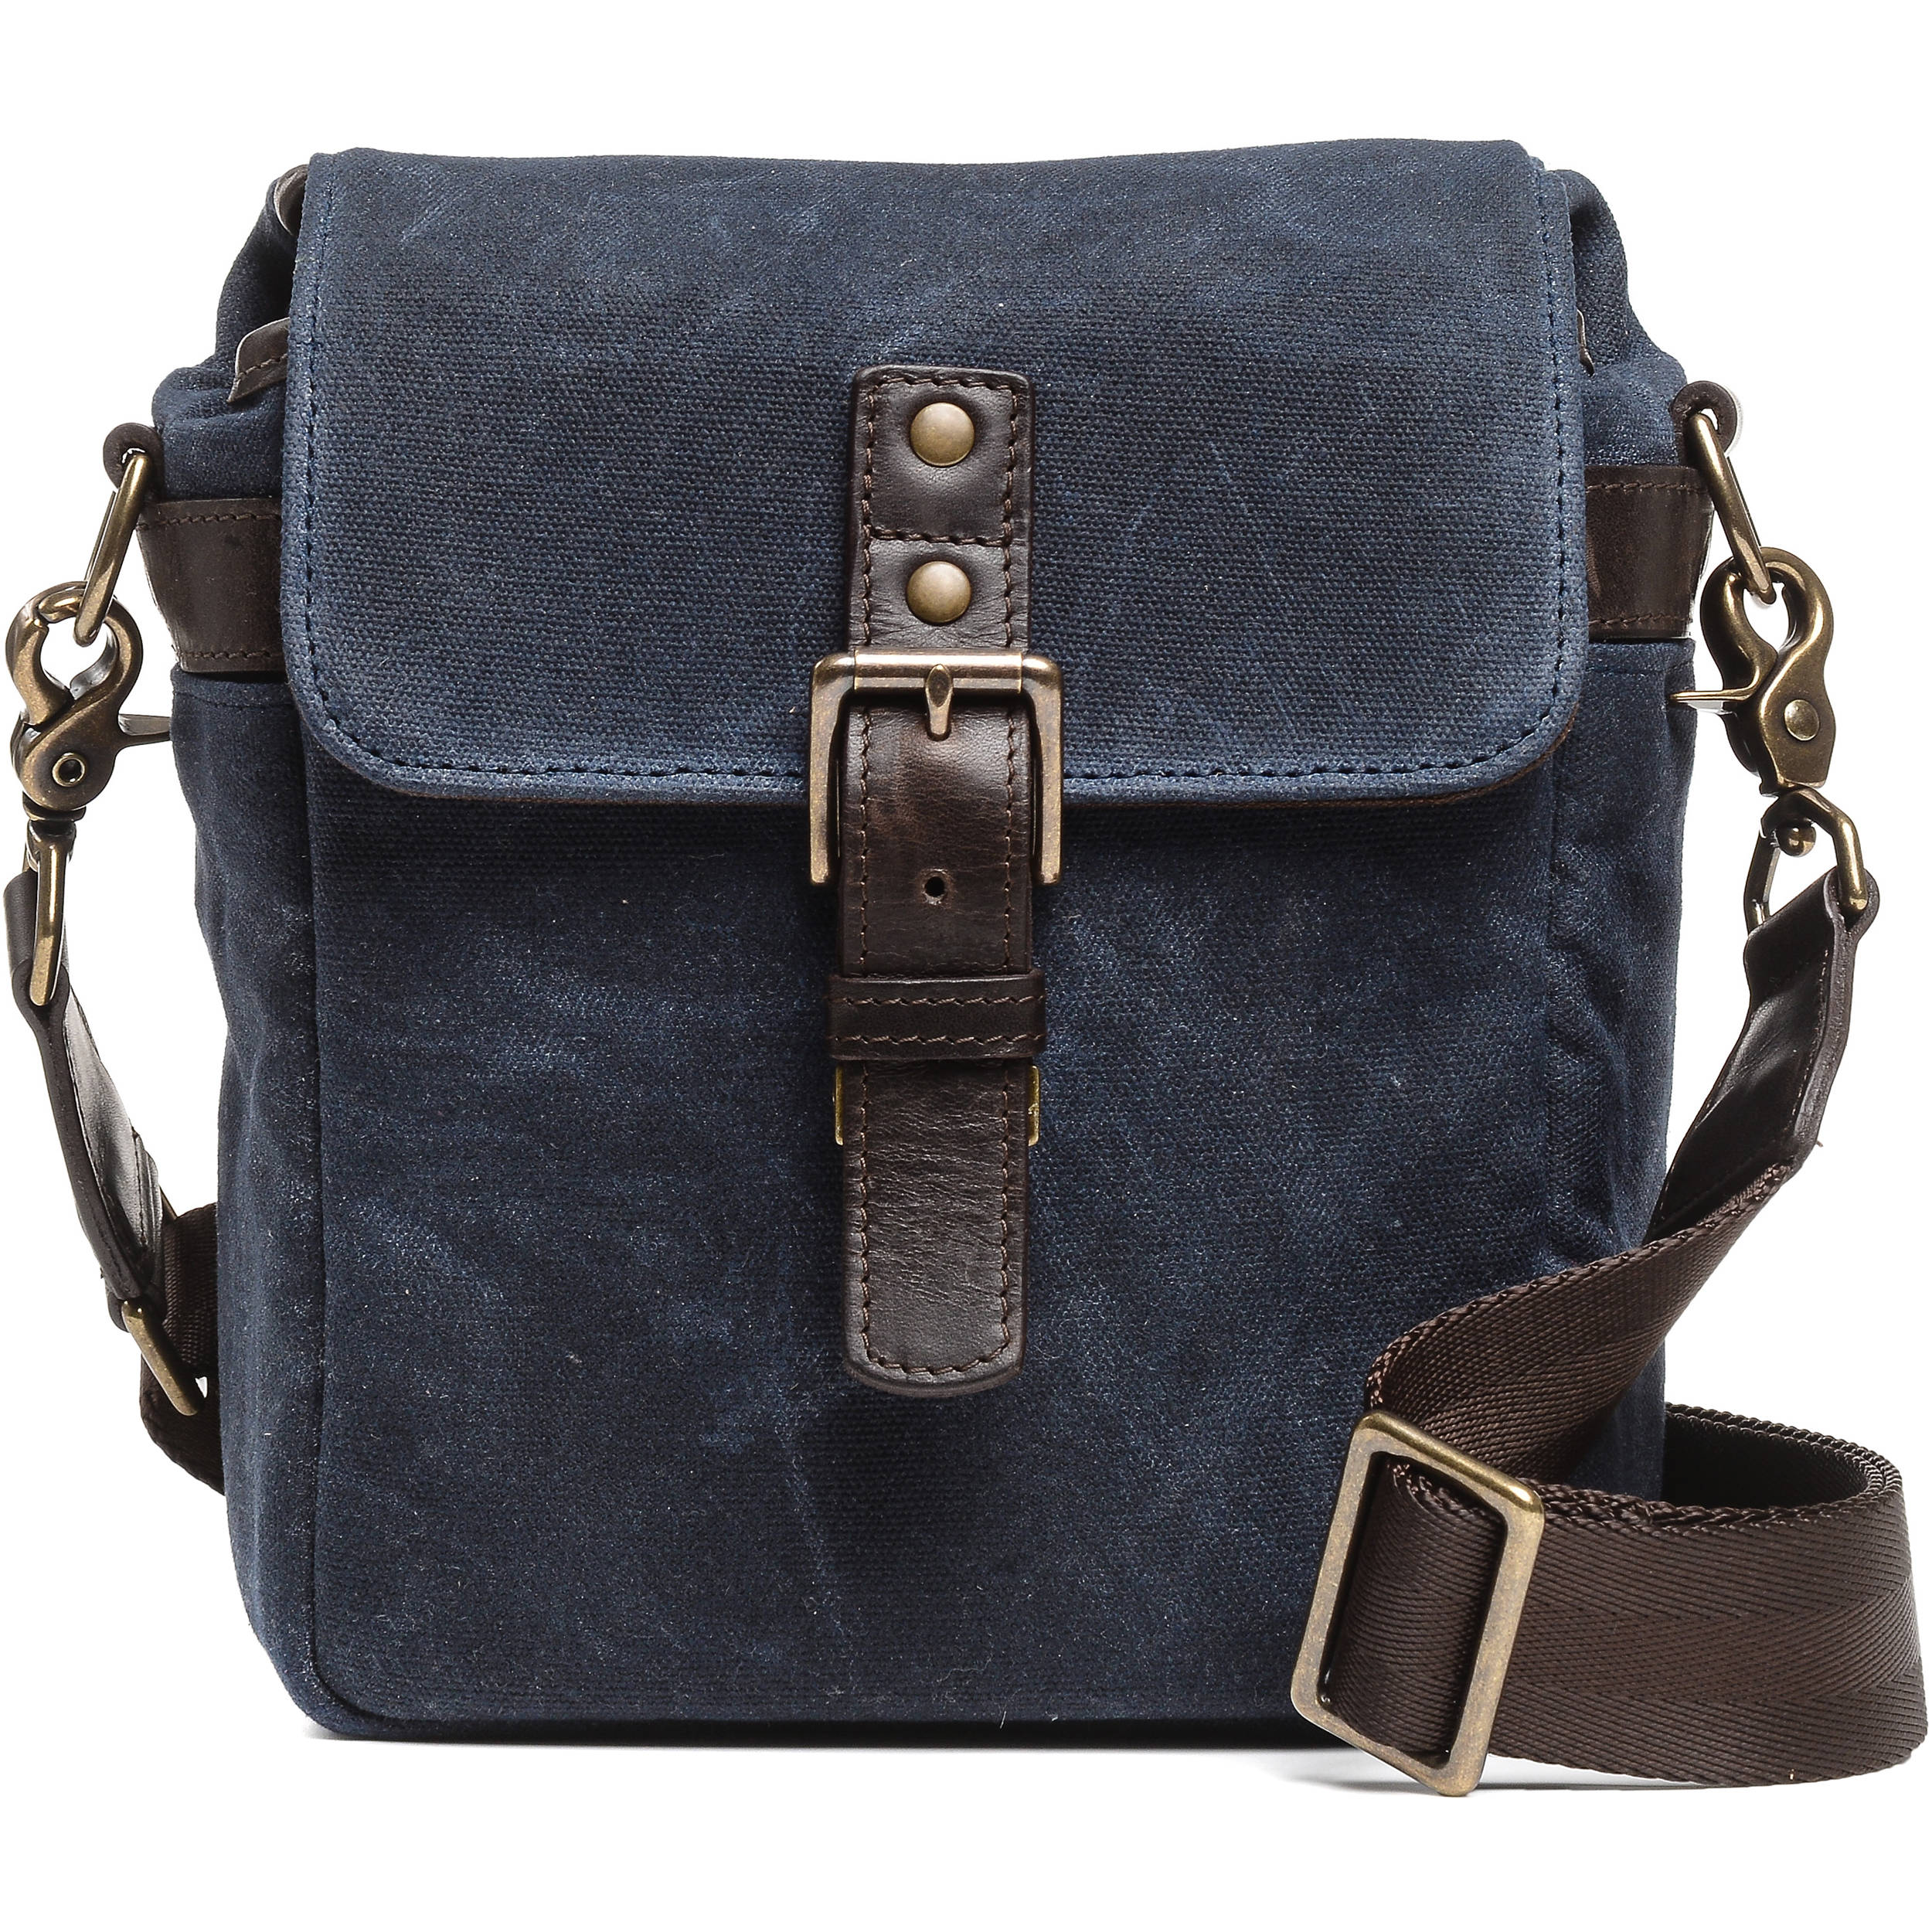 68d57aa330cf8 ONA Bond Street Waxed Canvas Camera Bag (Oxford Blue)